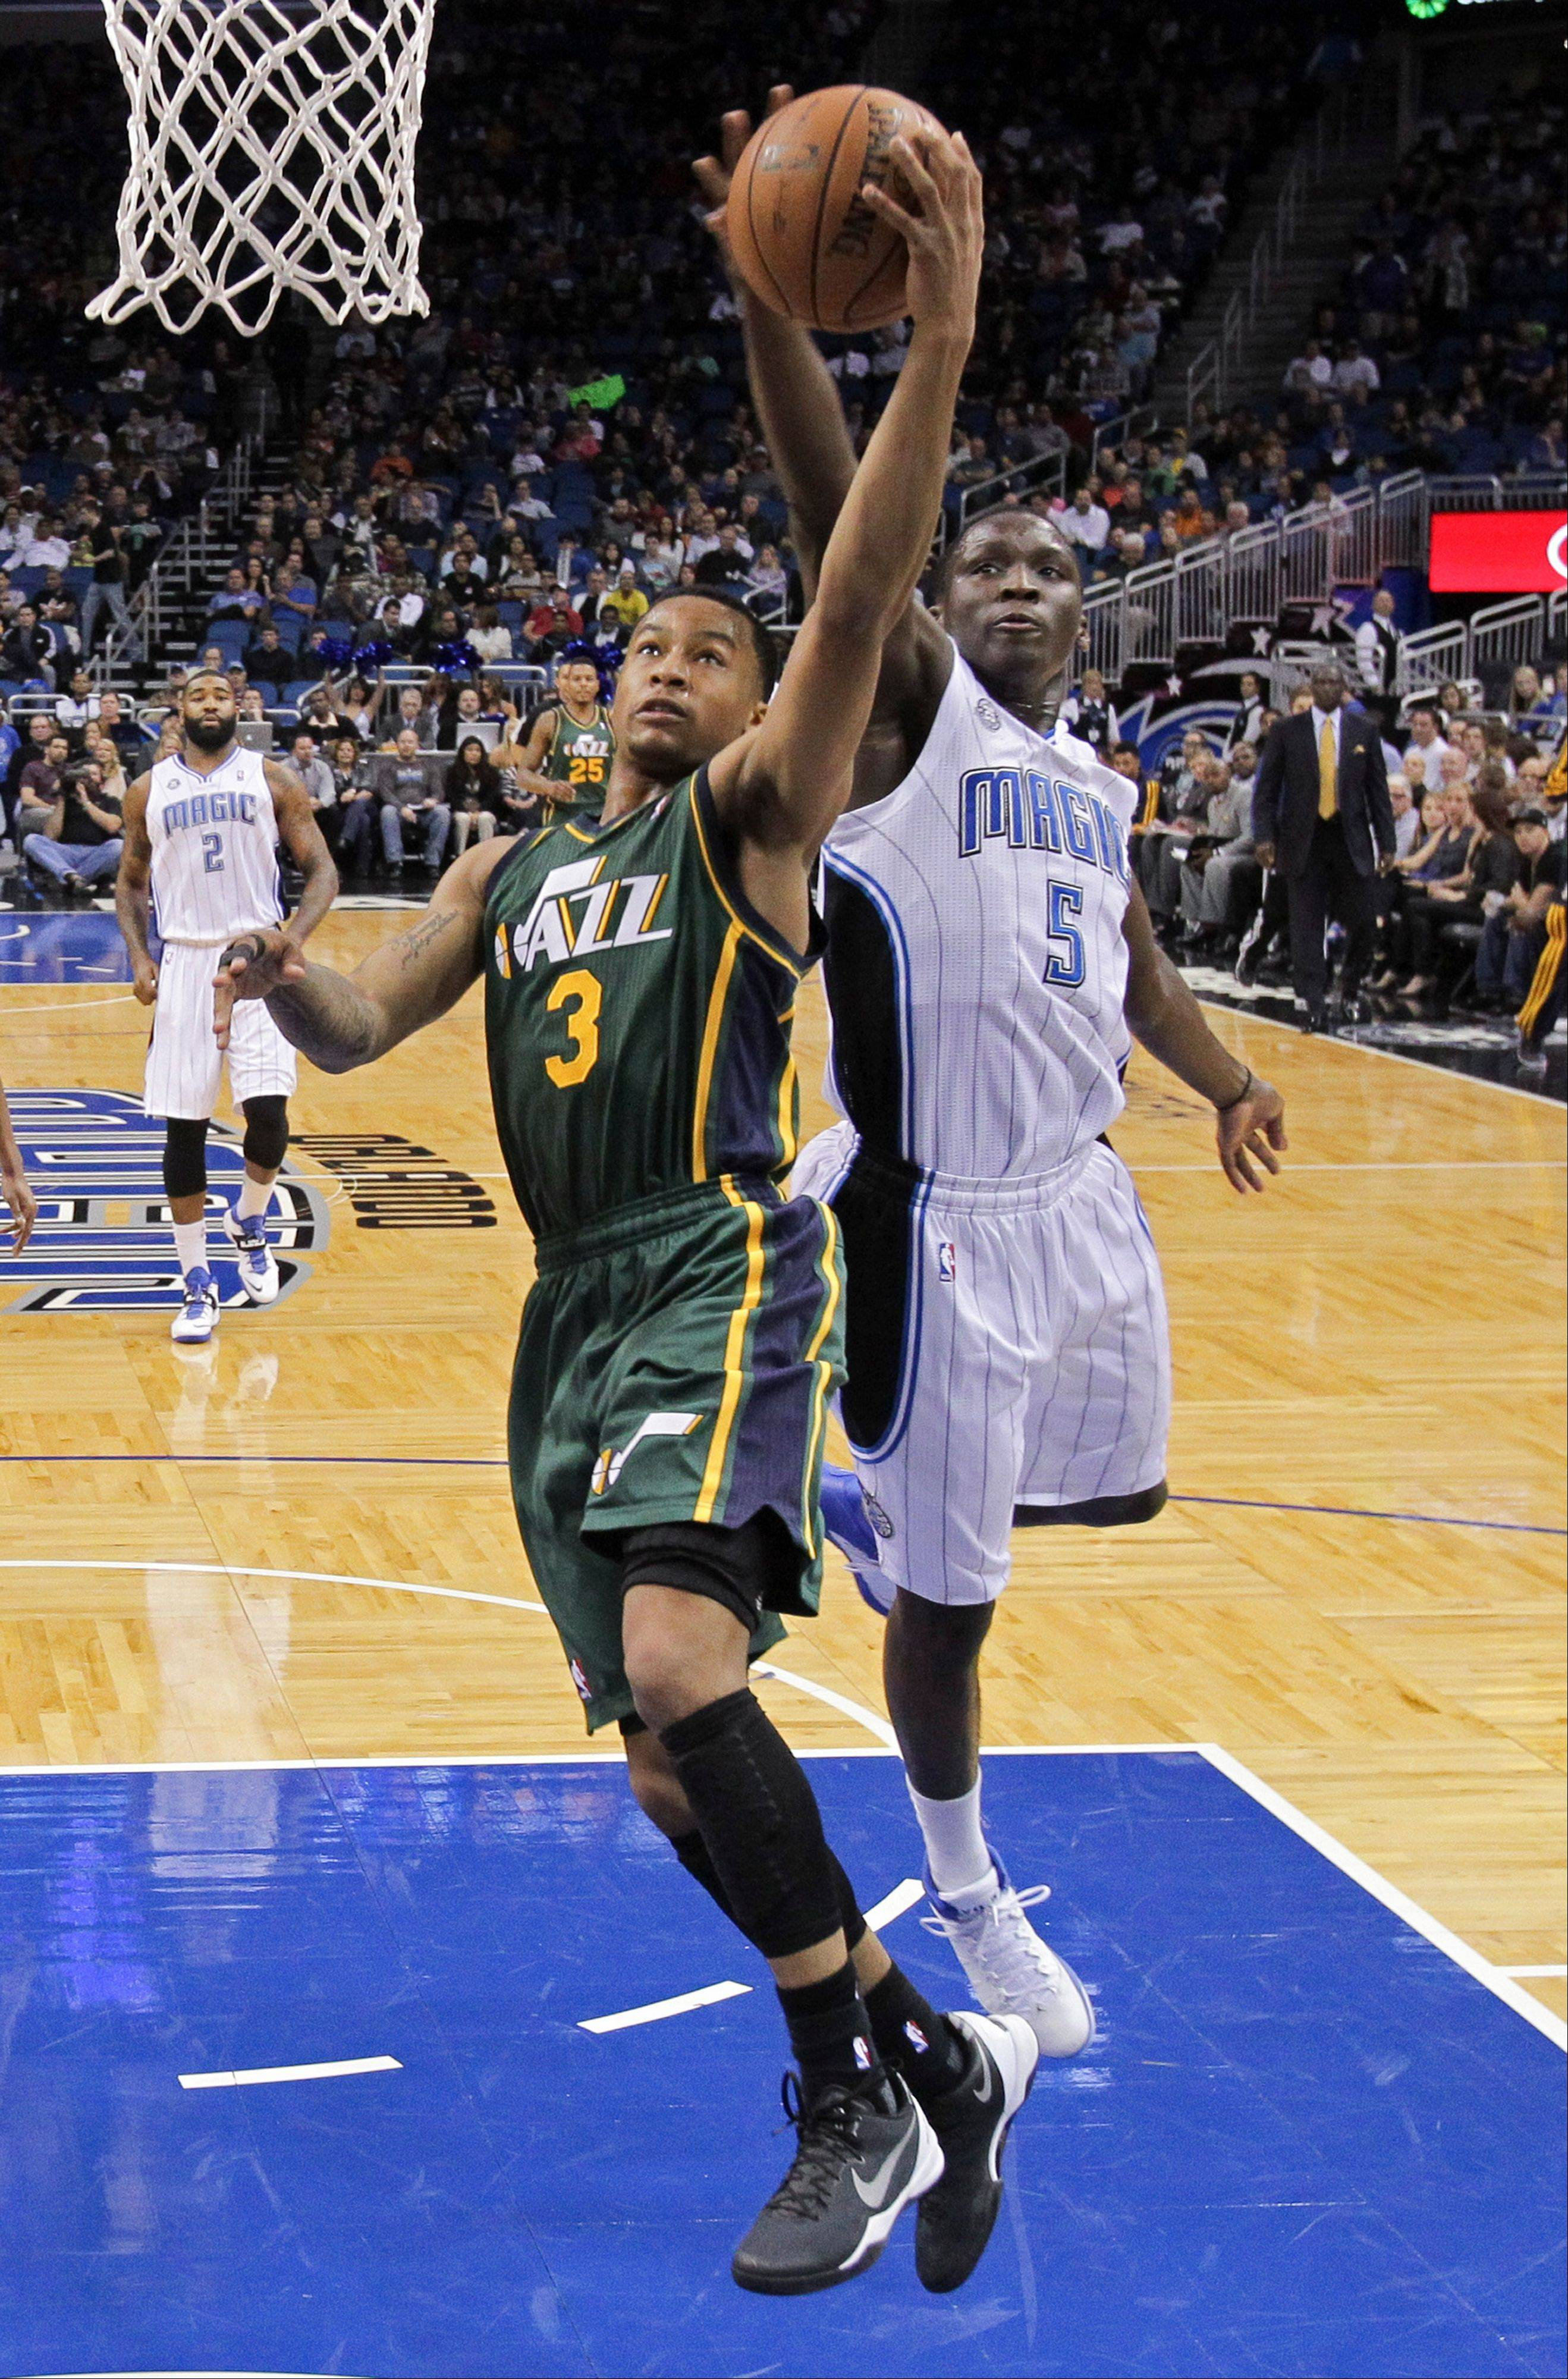 Orlando Magic�s Victor Oladipo (5) blocks a shot by Utah Jazz�s Trey Burke (3) during the first half of an NBA basketball game Wednesday in Orlando, Fla.